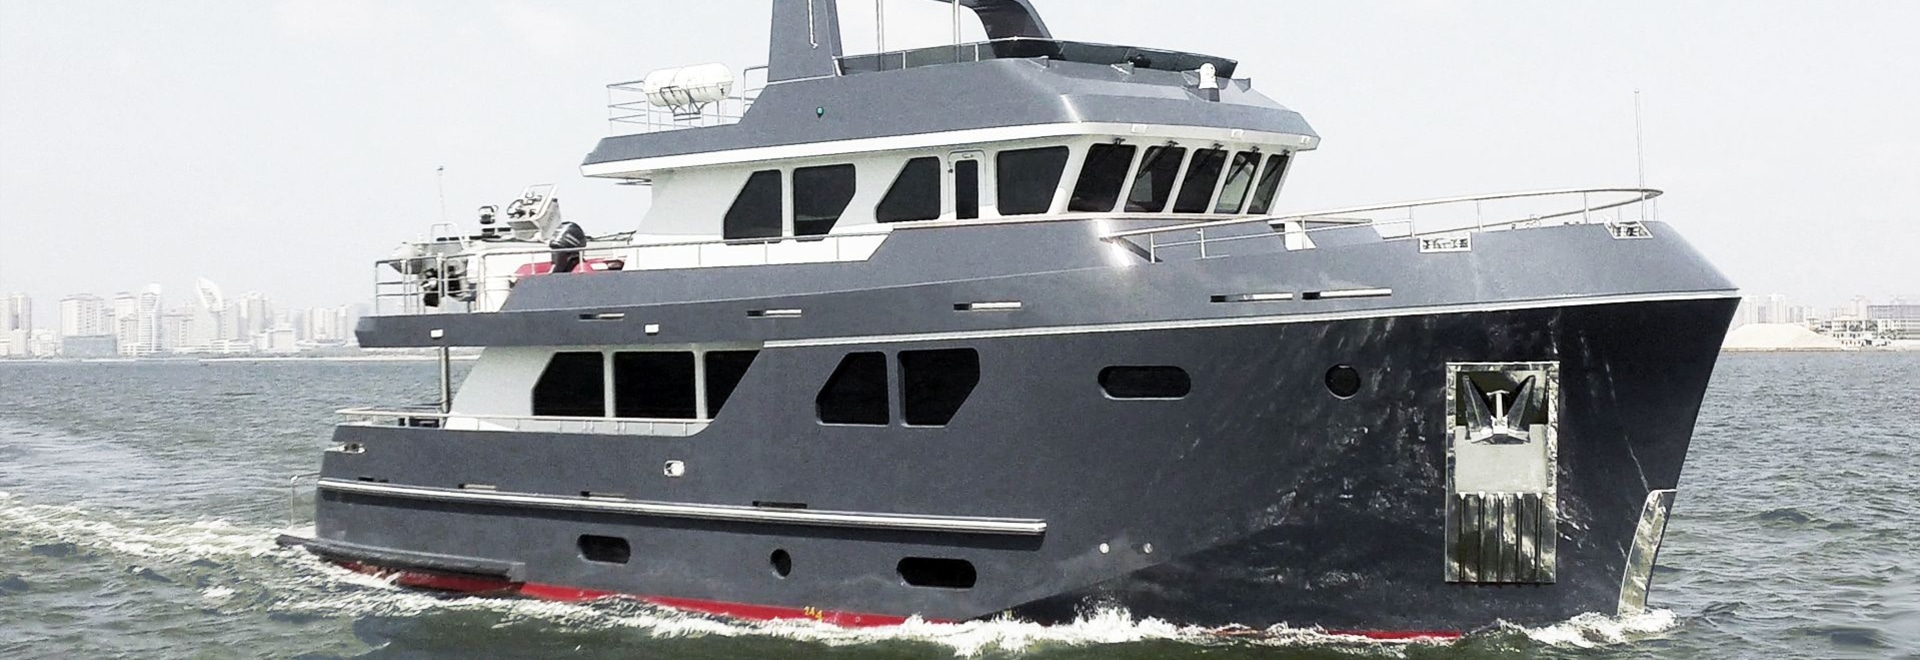 """Bering Yachts announces the successful launch of Bering 80 """"Veda""""."""